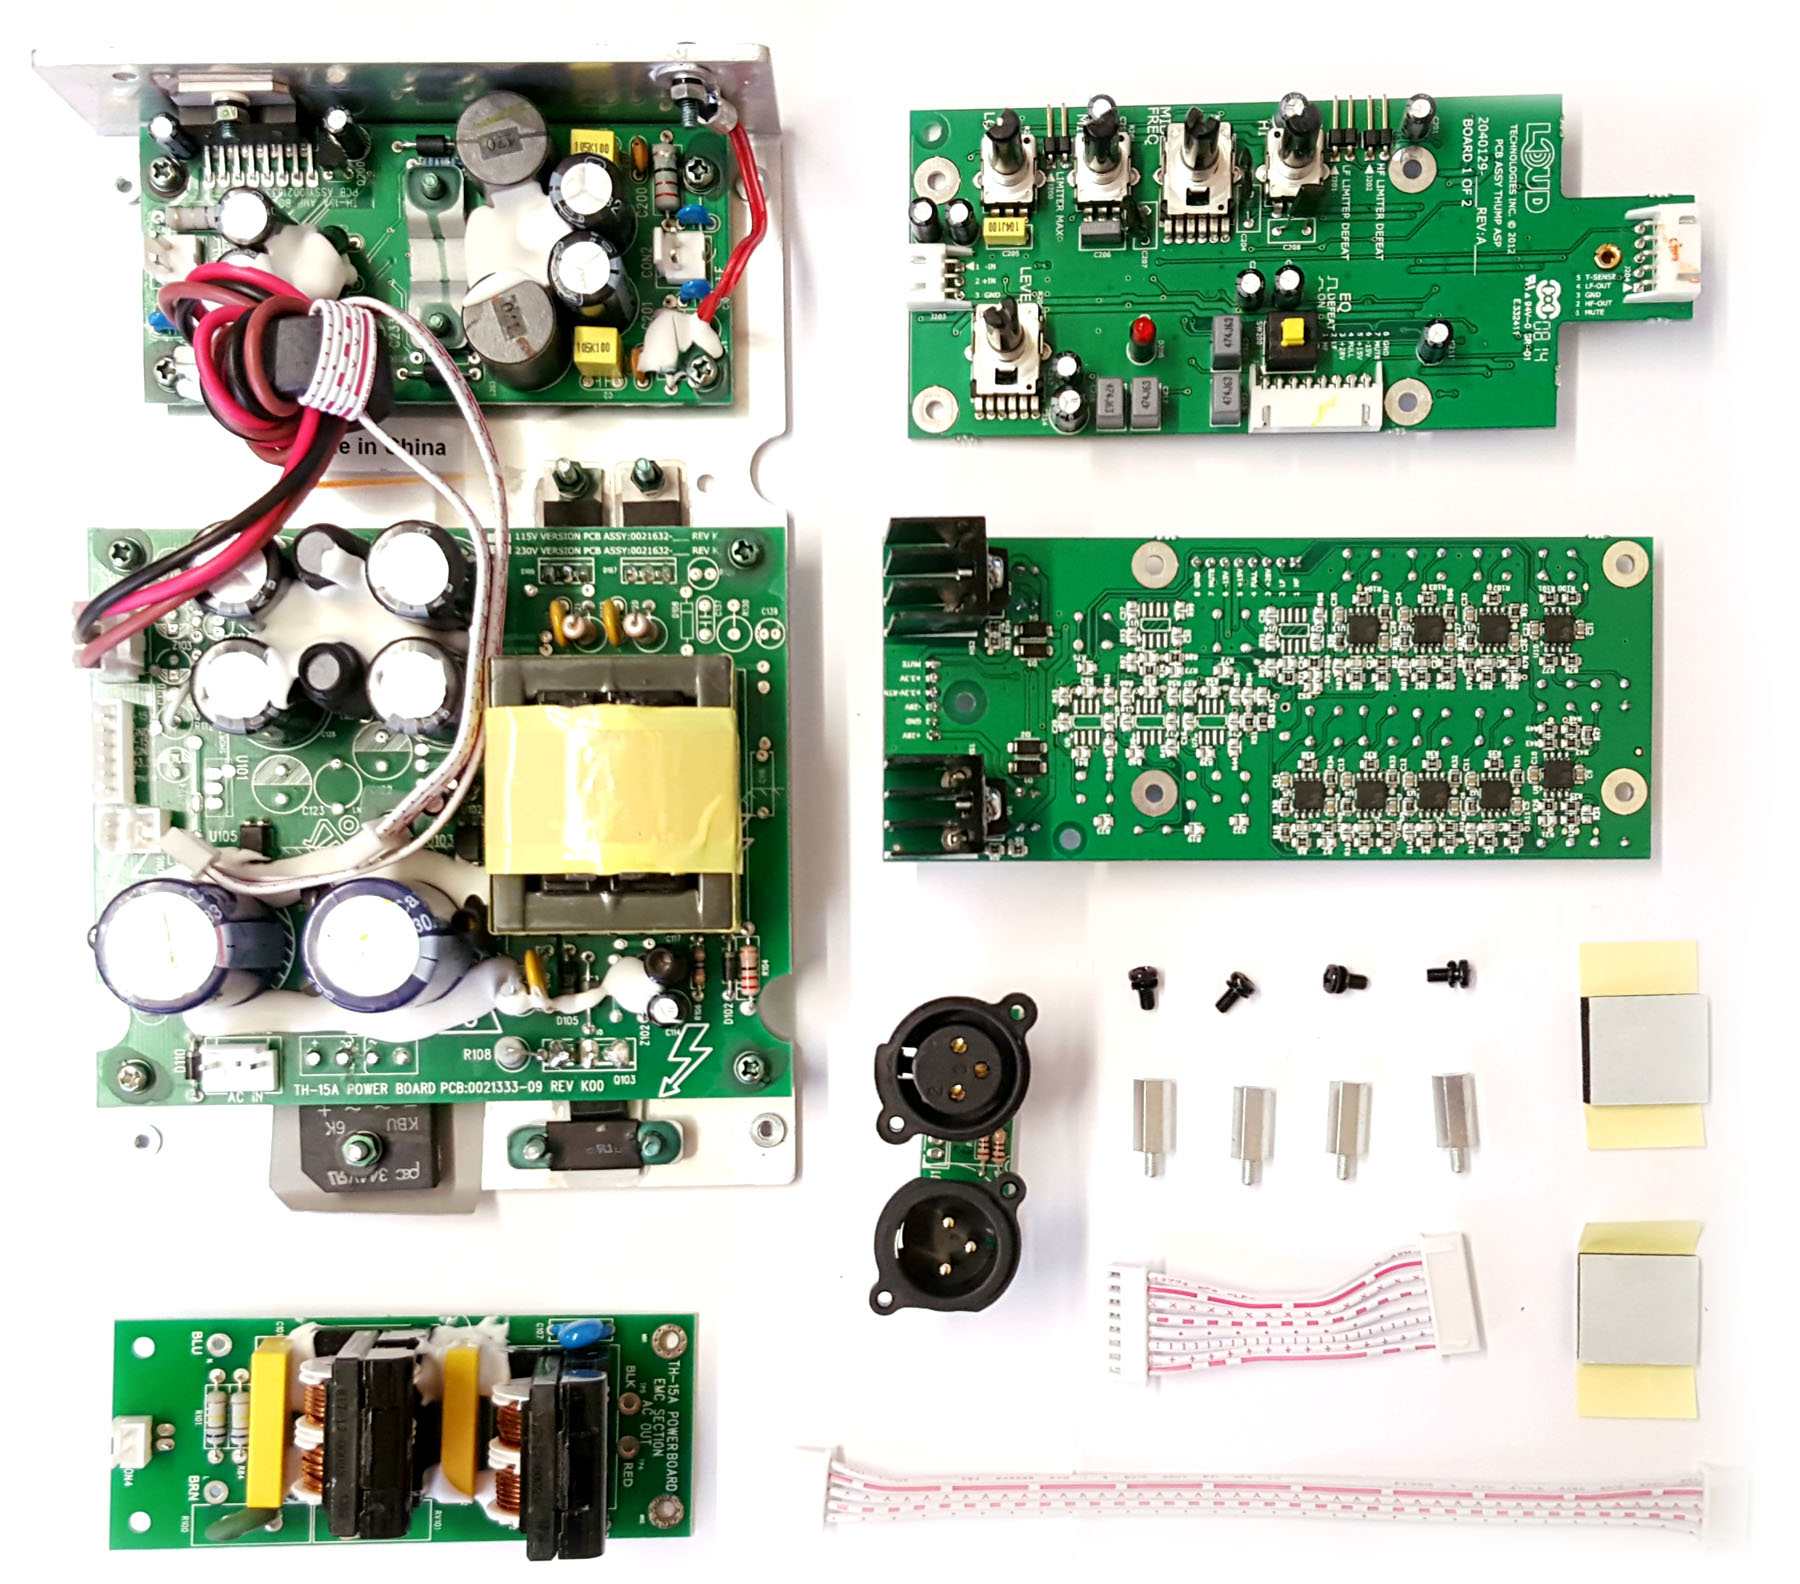 Mackie Thump Th 12a Digital To Analog Rework Kit Circuit Board Picture Frames Pcb Printed Boards Pinterest